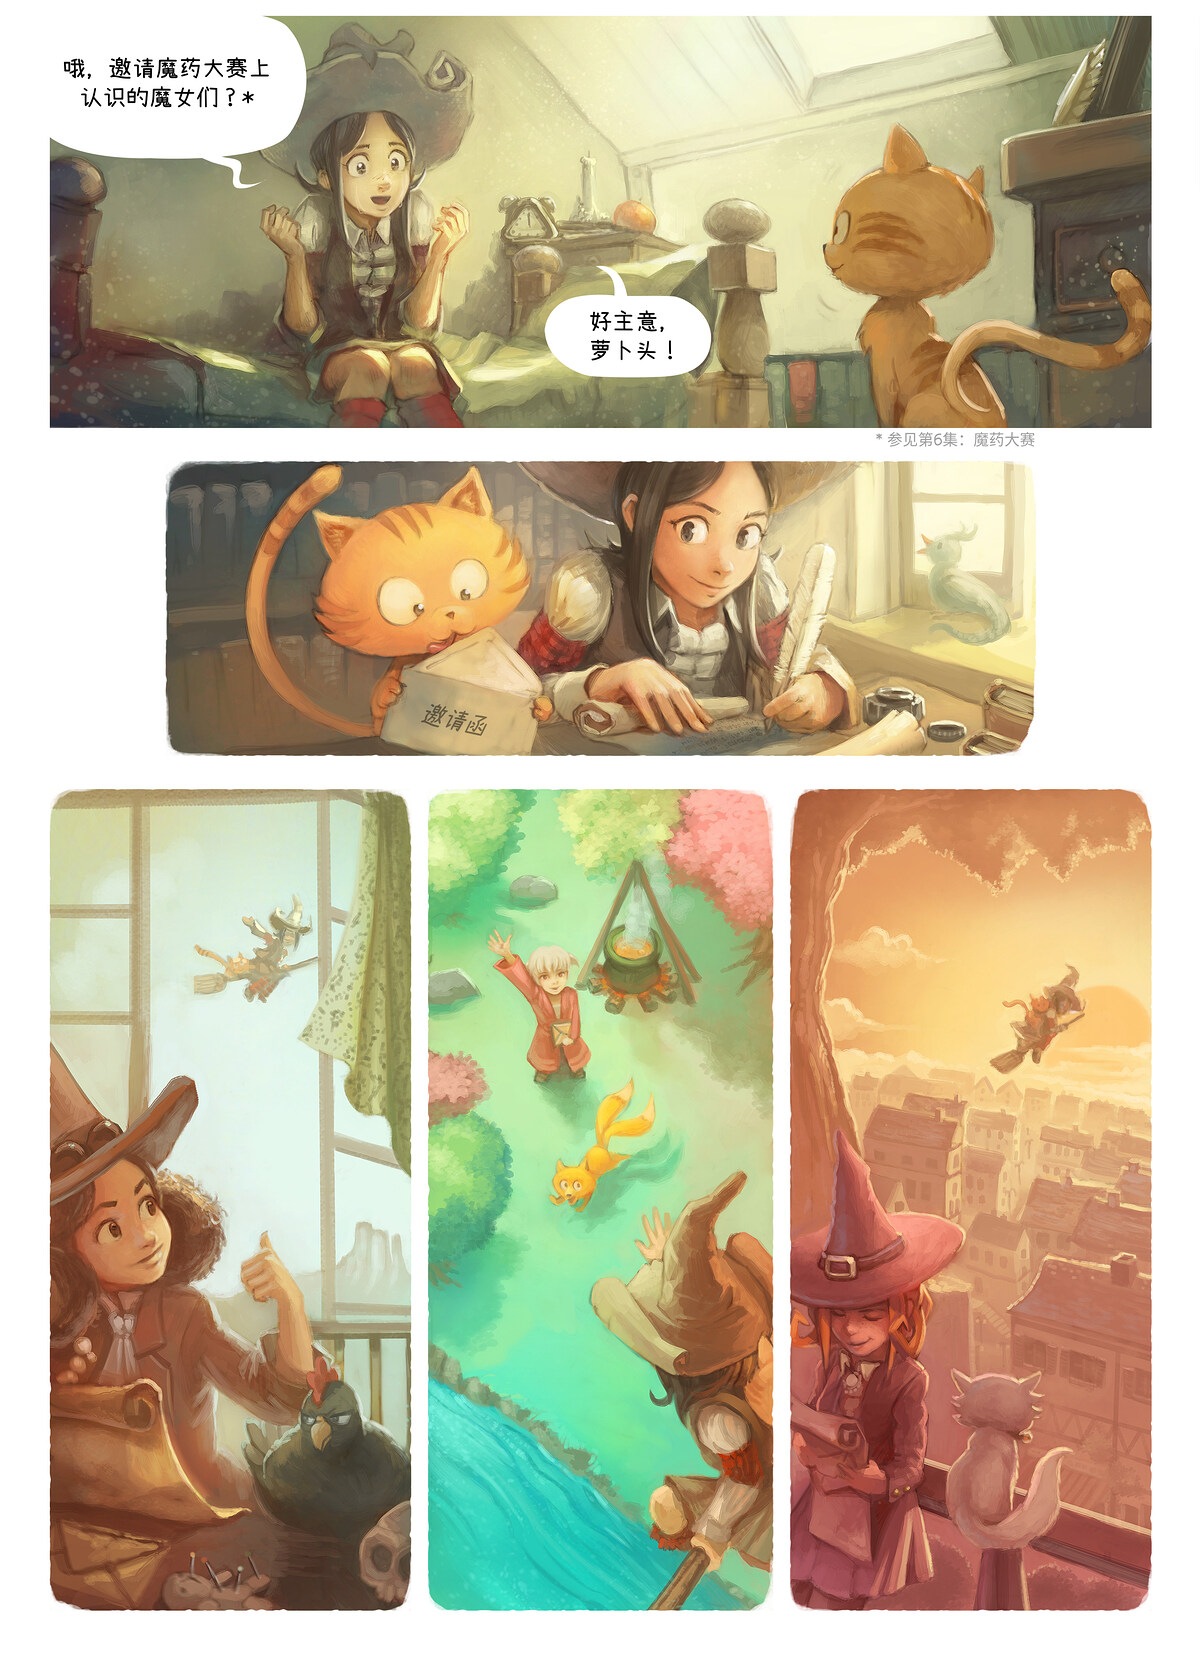 A webcomic page of Pepper&Carrot, 漫画全集 8 [cn], 页面 2